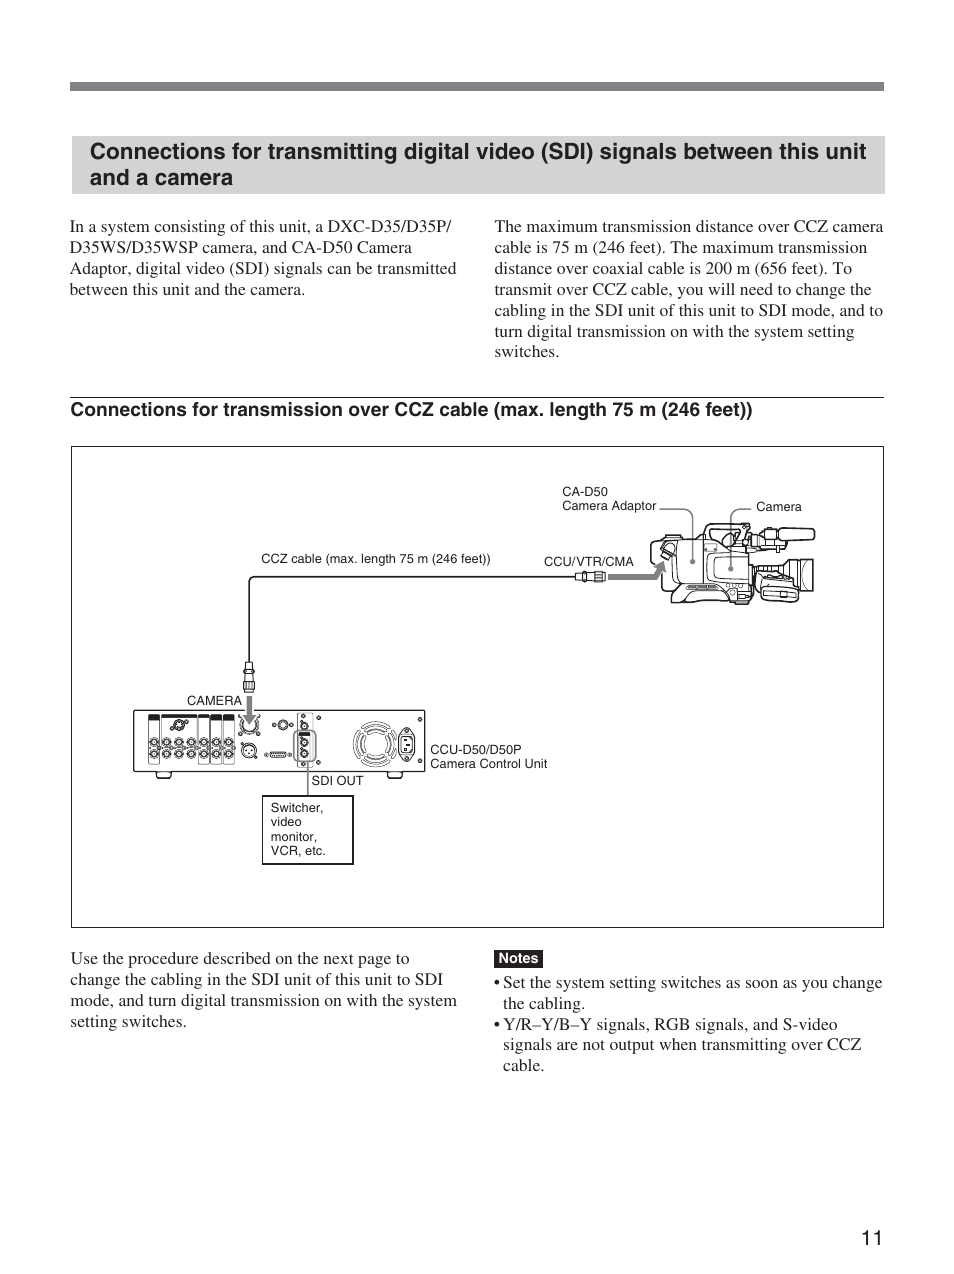 sony ccu d50 user manual page 11 31 original mode rh manualsdir com Sony Field Recorder sony ccu-d50 service manual